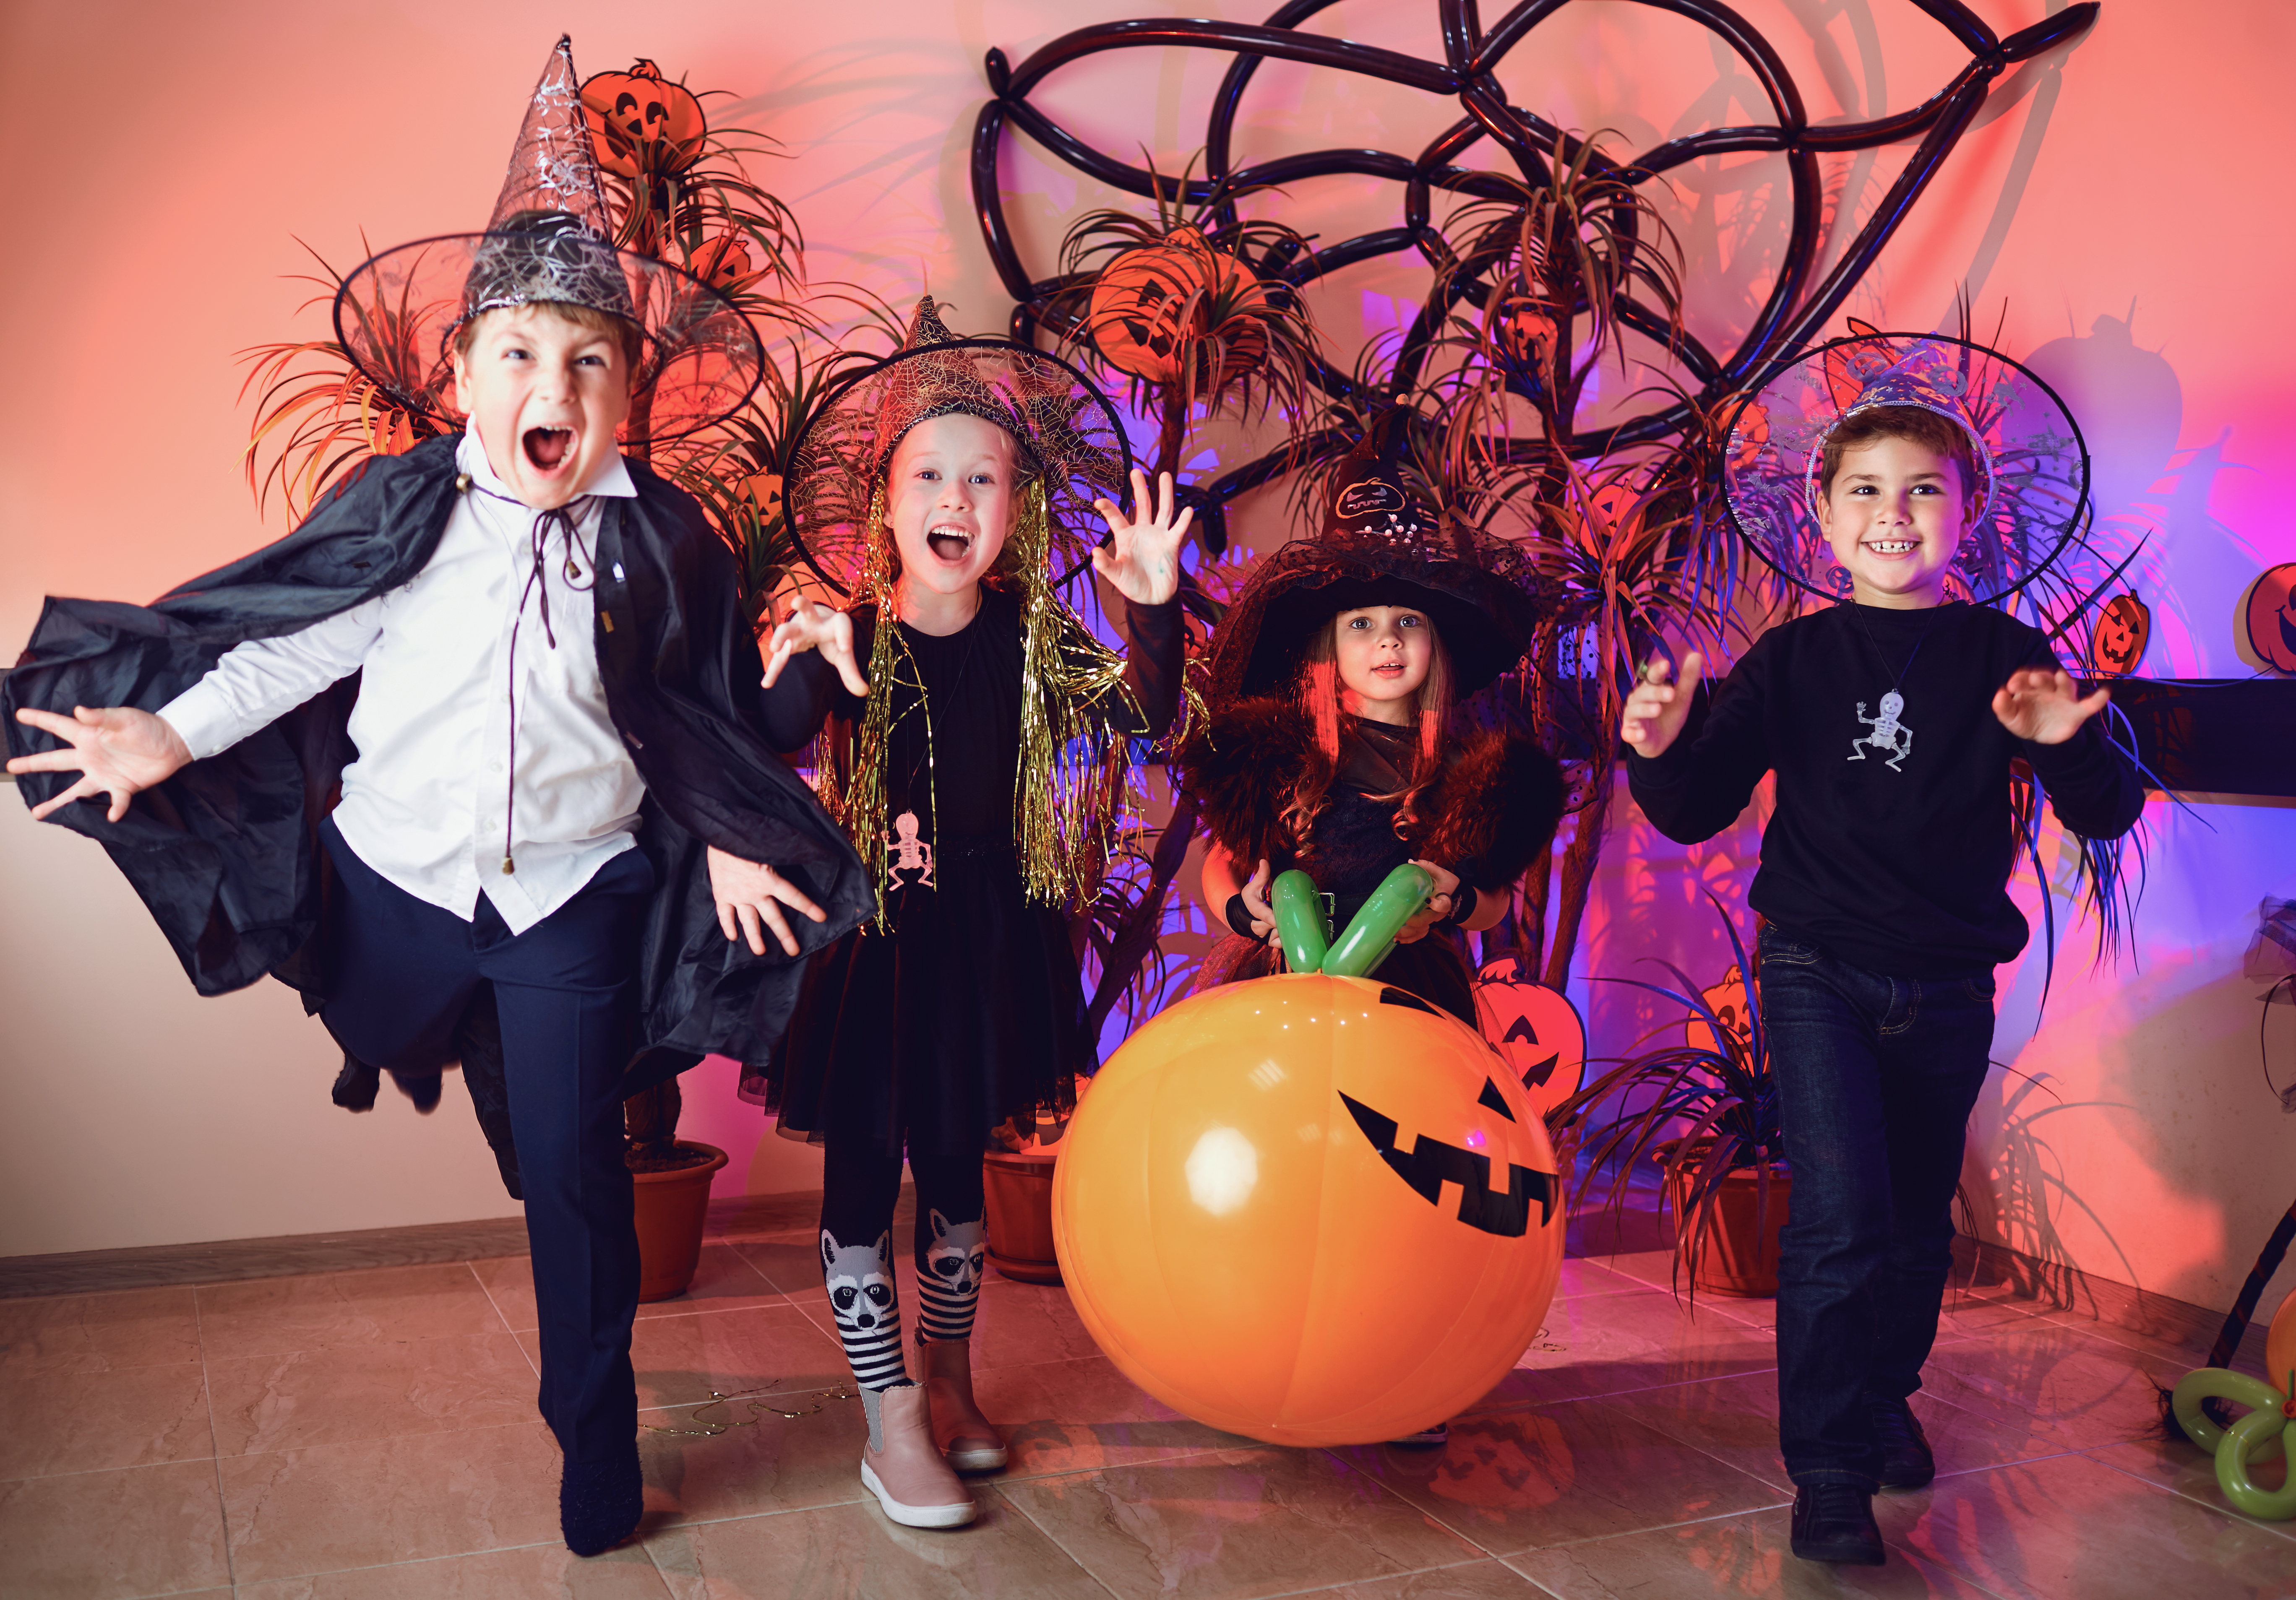 Canva - A Group of Children in Costumes on a Halloween Holiday